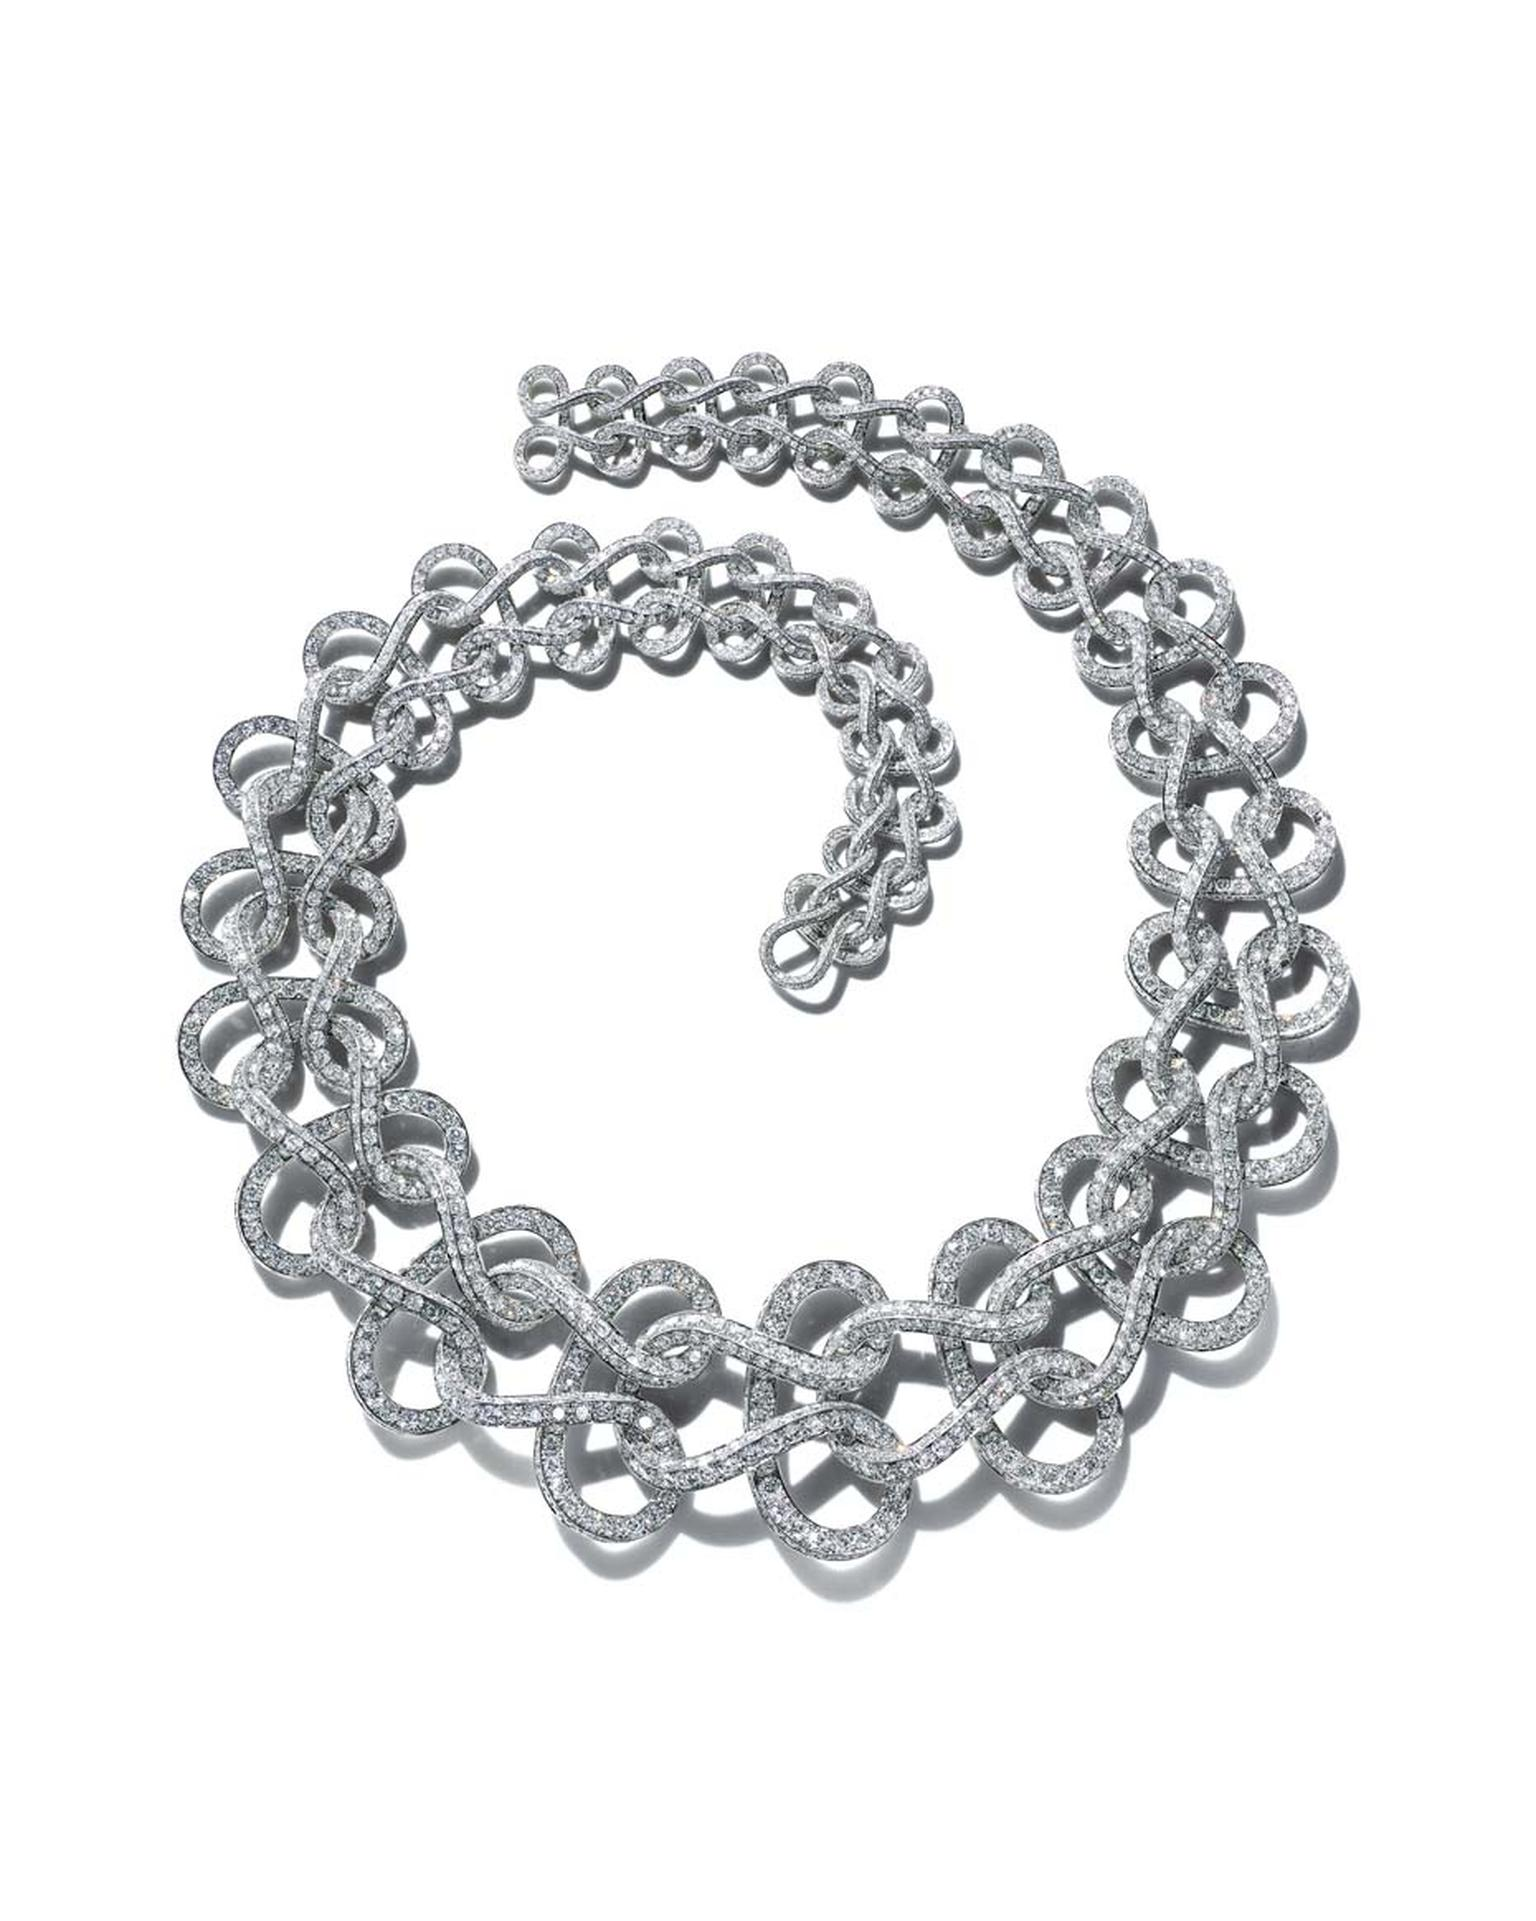 Tiffany necklace of diamonds and platinum in a wave pattern, inspired by an archival watch chain from the new 2015 Blue Book collection.